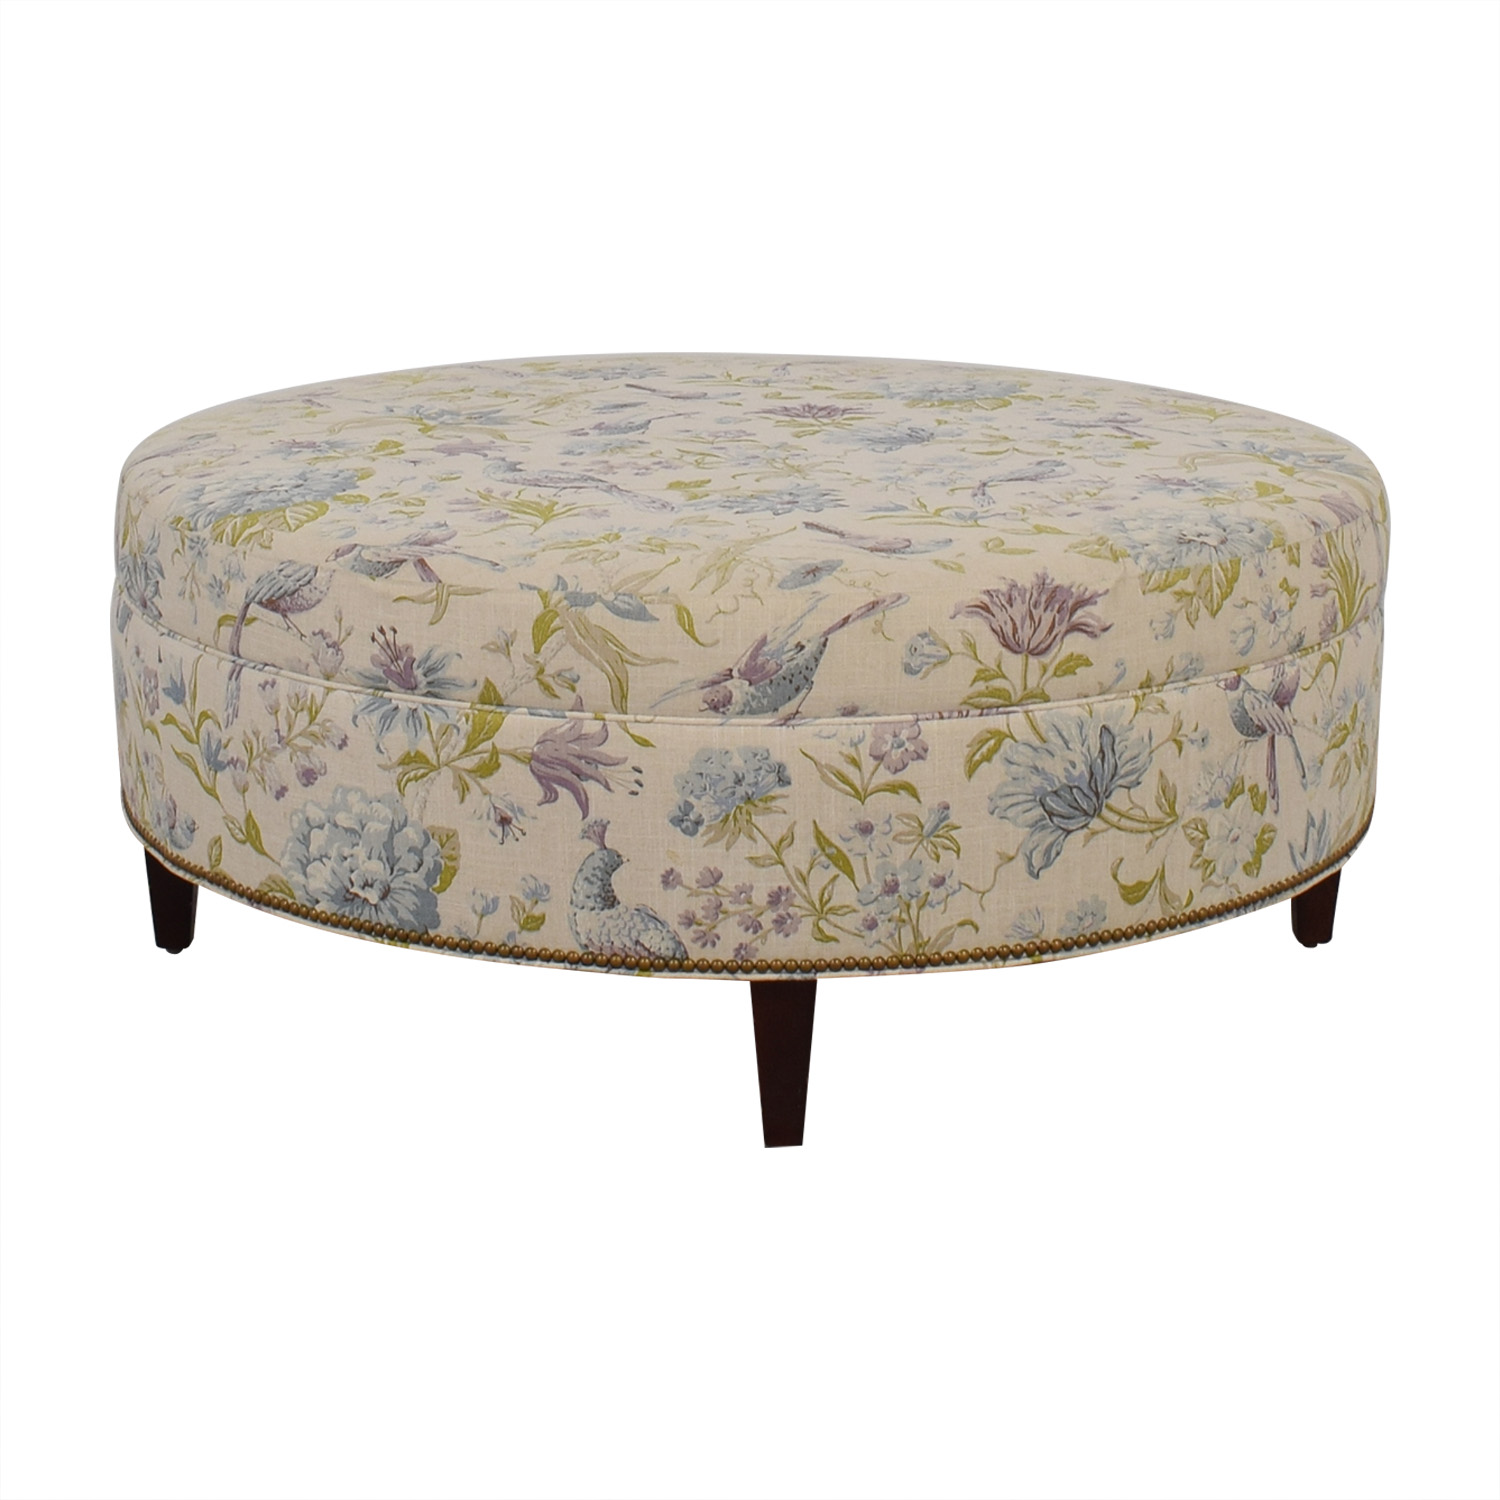 chairs and ottomans upholstered youth table 90 off custom floral bird ottoman